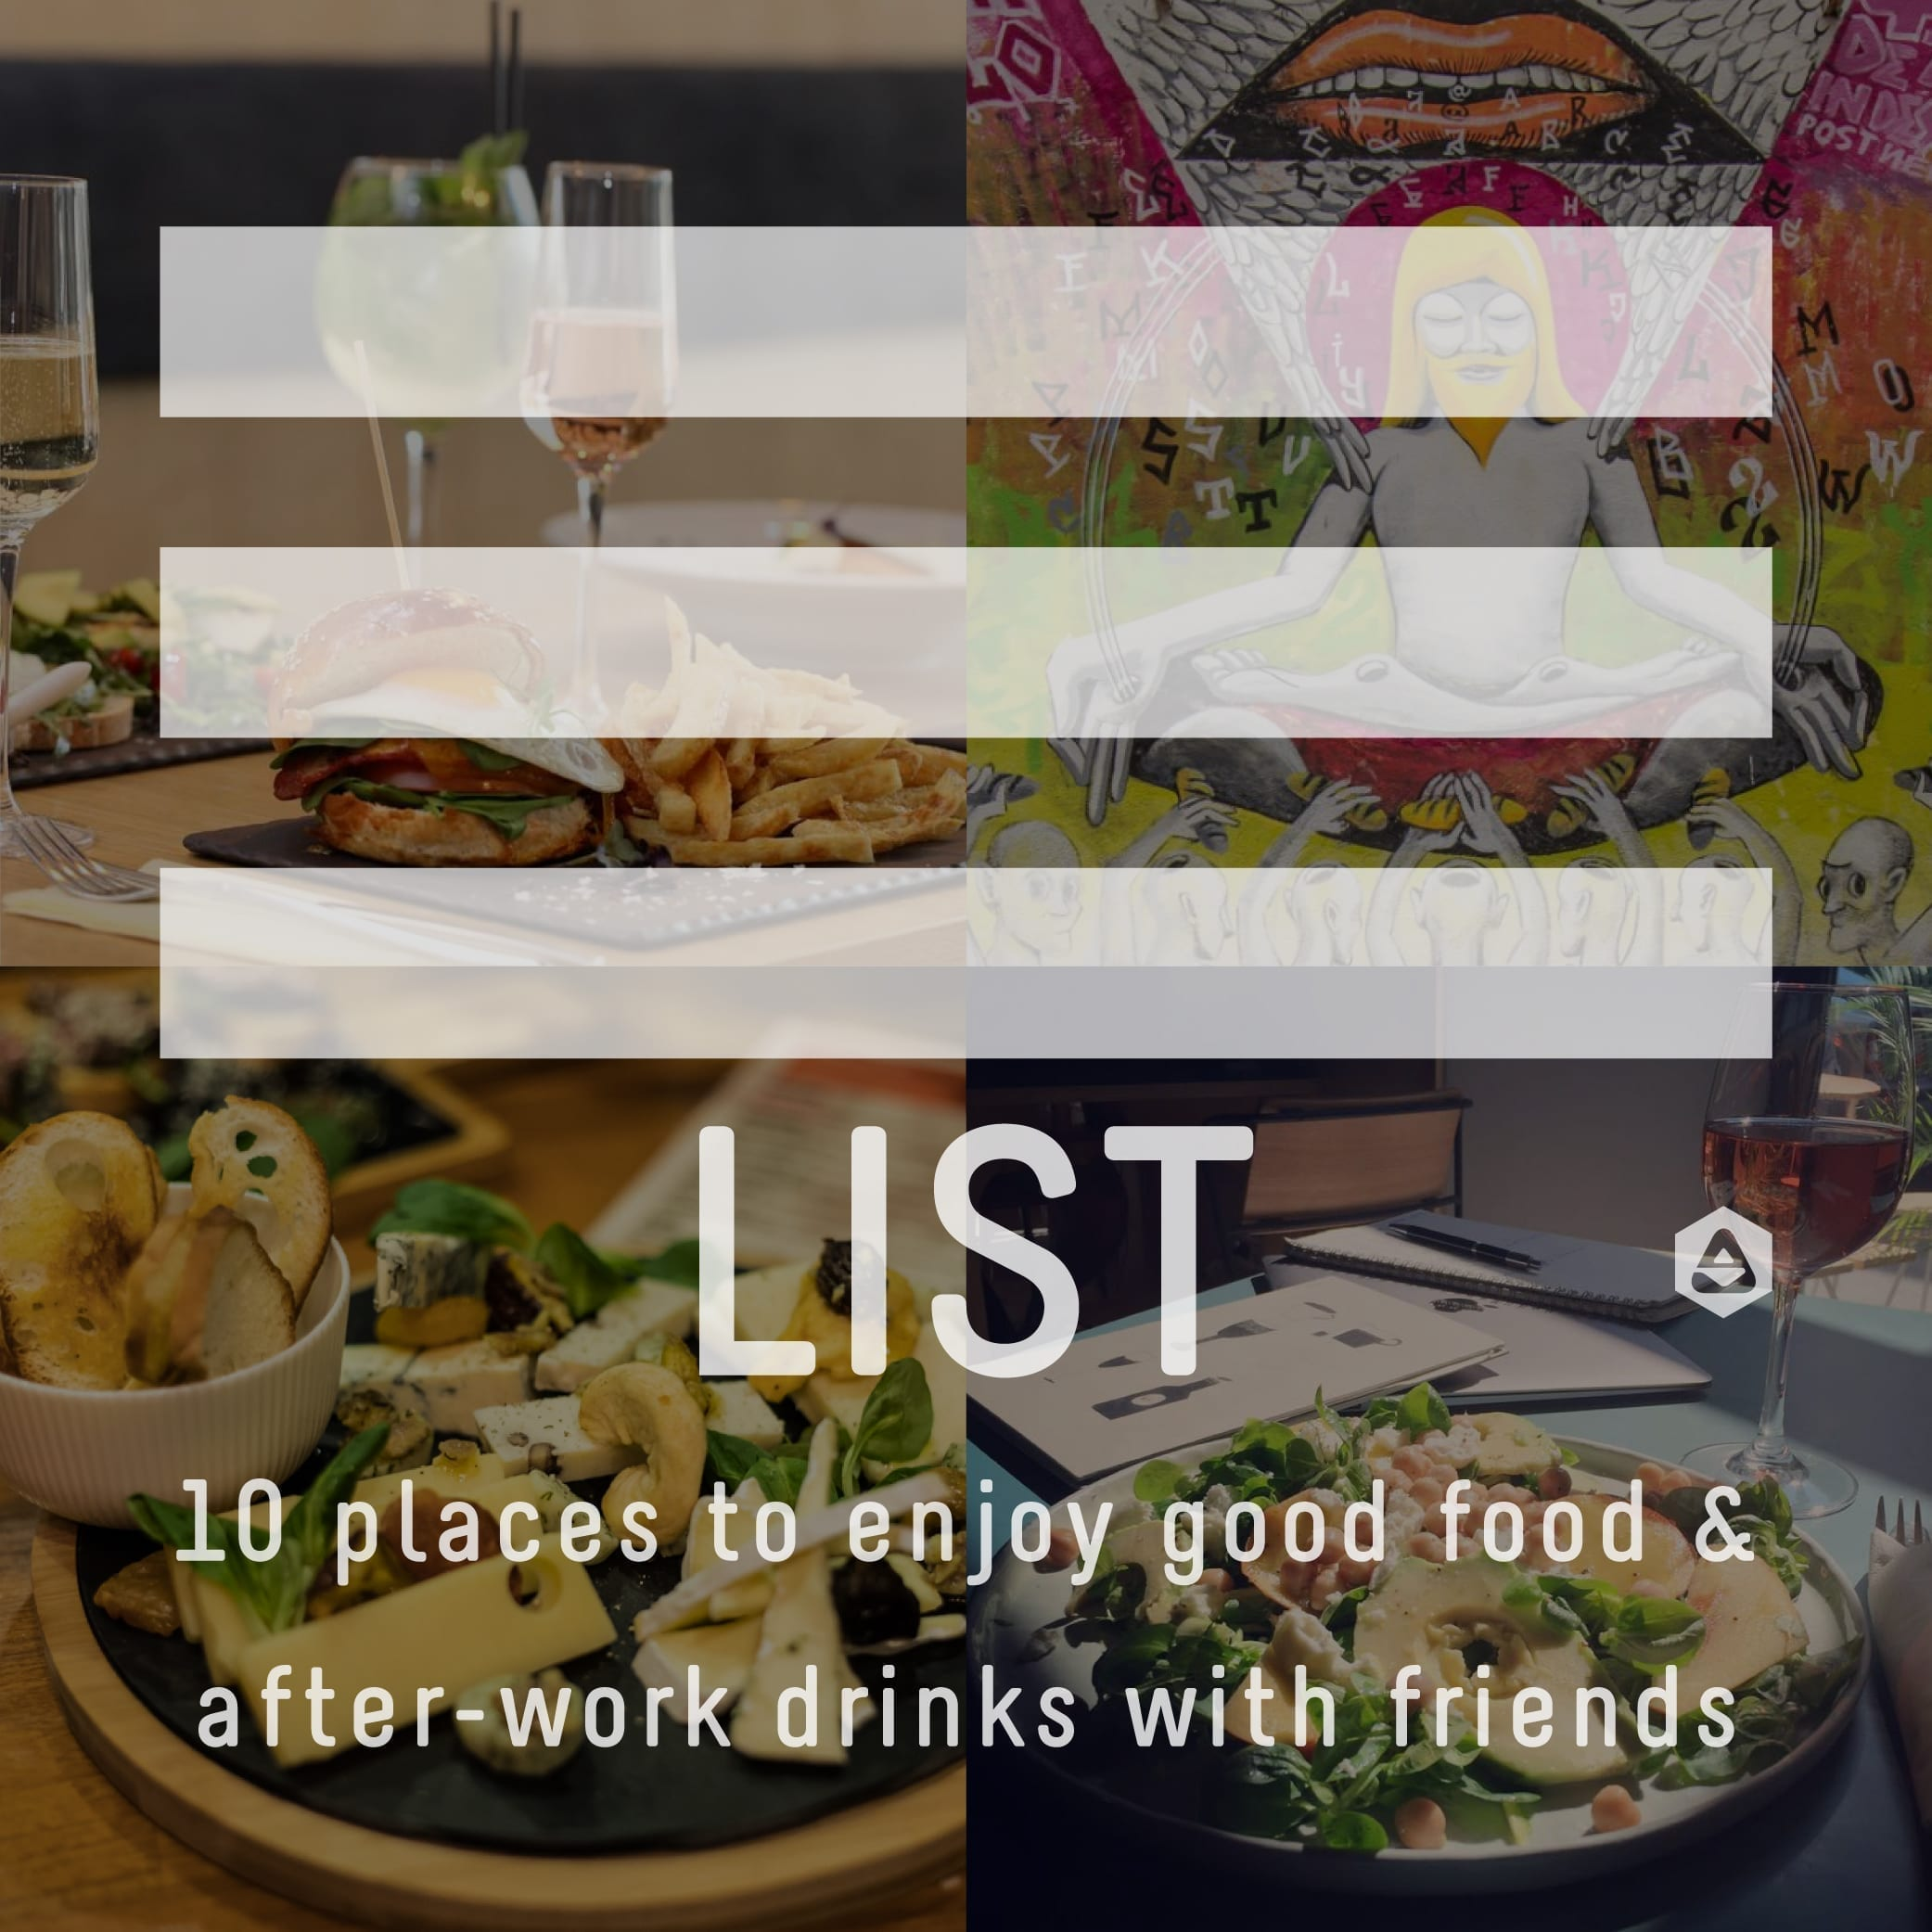 LIST: 10 places to enjoy good food & after-work drinks with friends